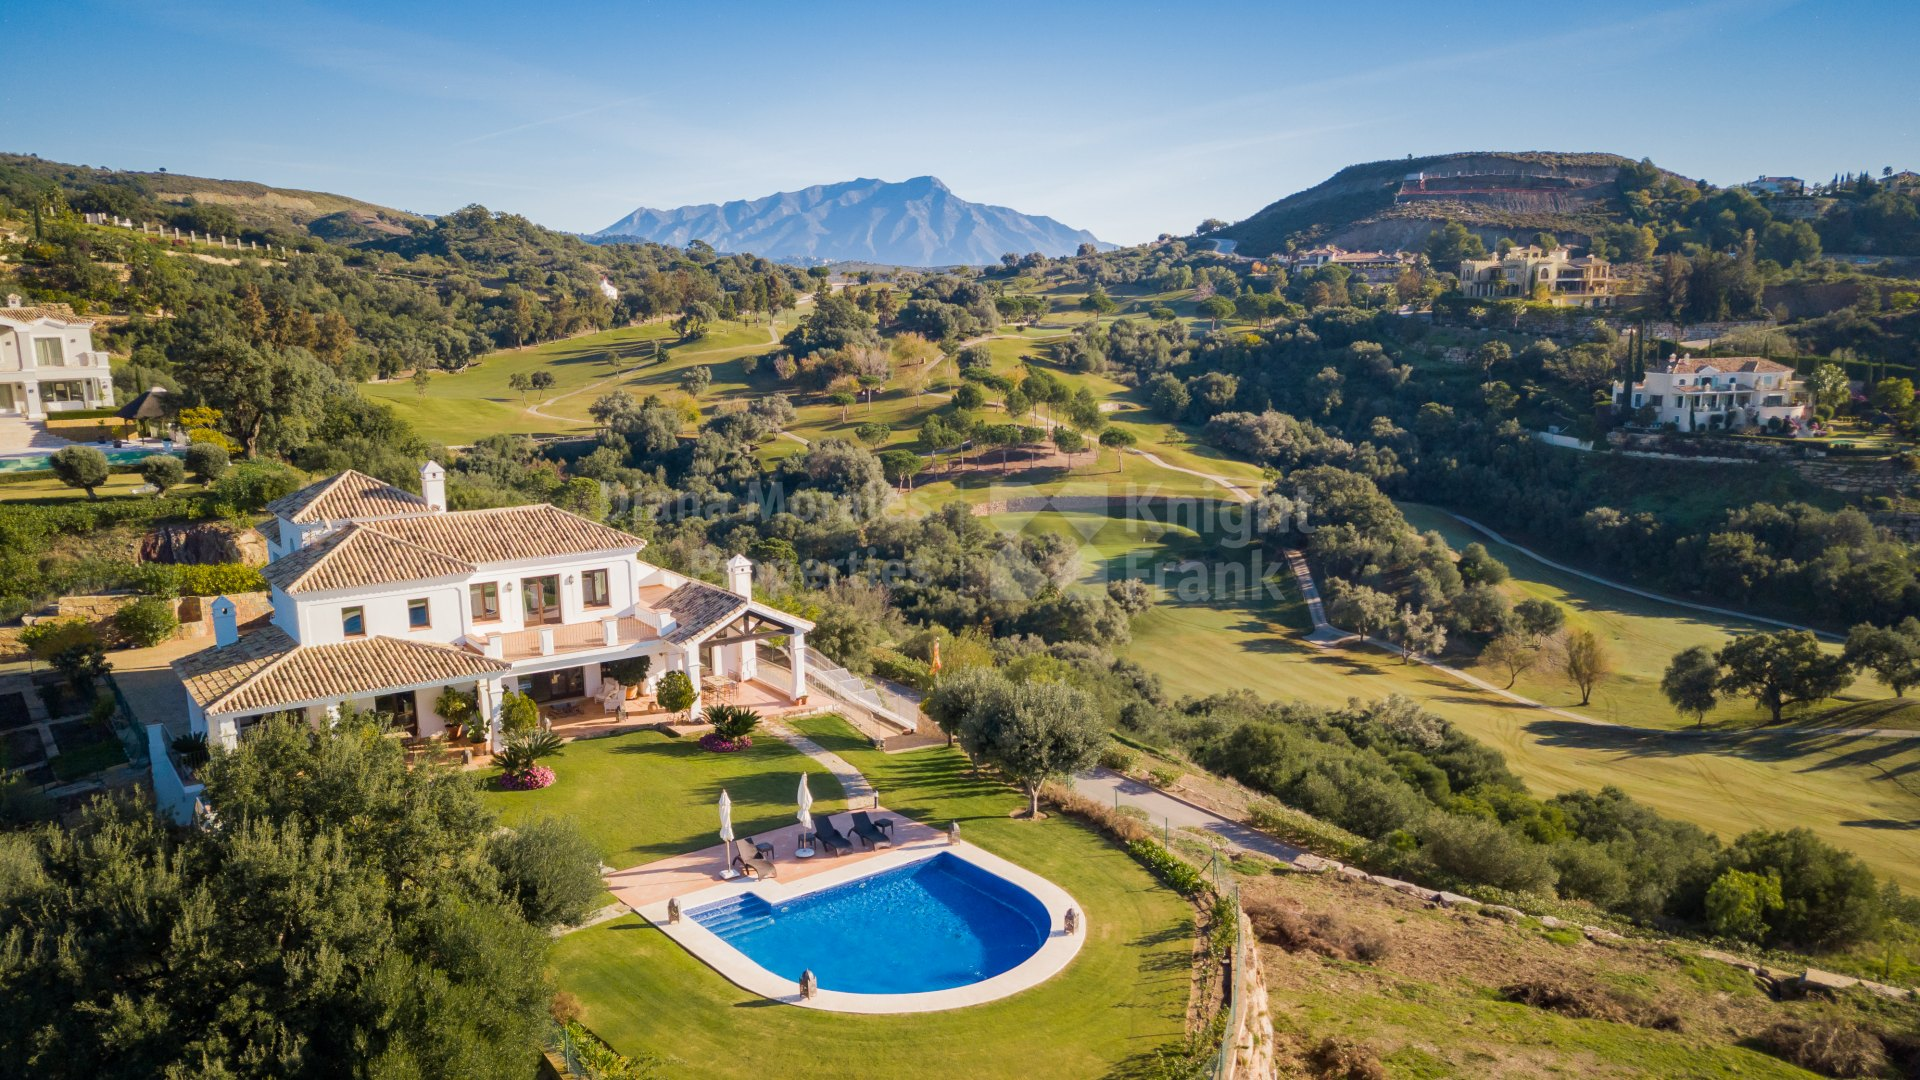 Marbella Club Golf Resort, Cautivadora Villa